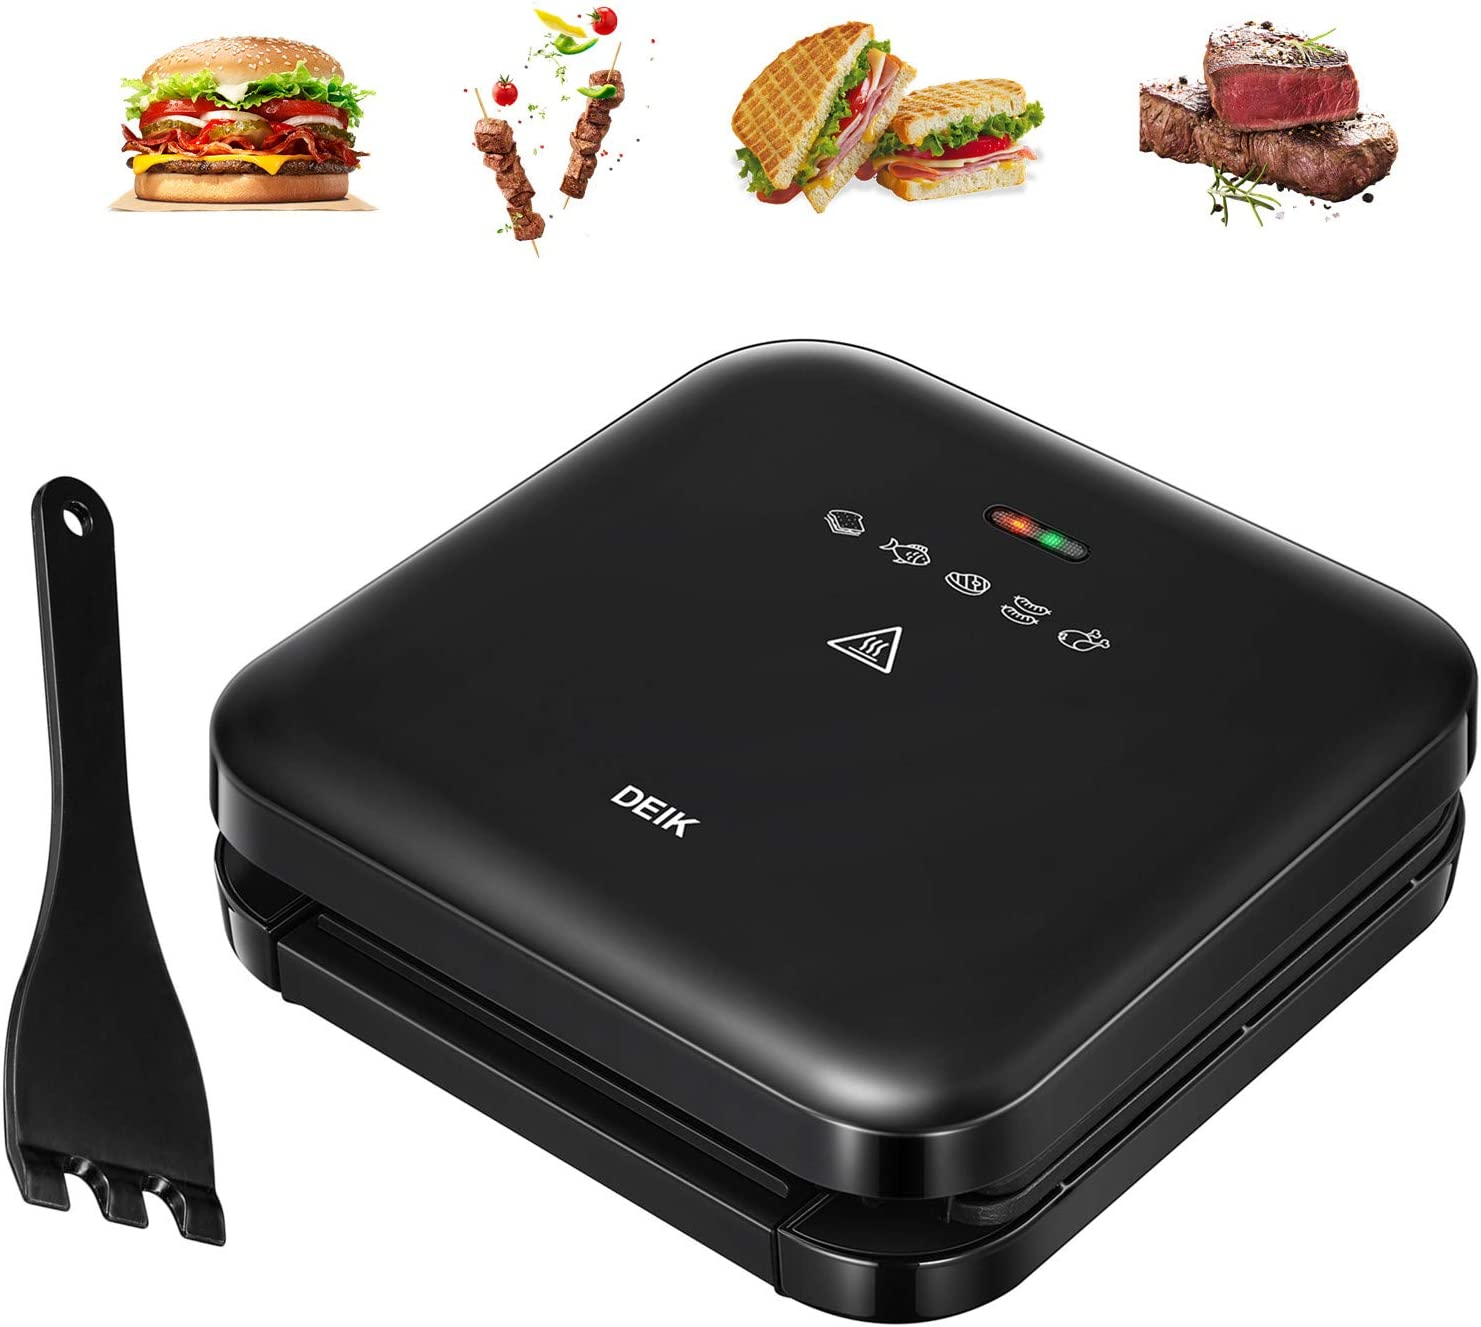 Deik Electric Indoor Grill, Smokeless Grill, Panini Press with 1200W Double-Side Heating Plates, 6-Serving, Nonstick Easy Clean Plates, Includes Grill Spatula Extra-Large Drip Tray, Black